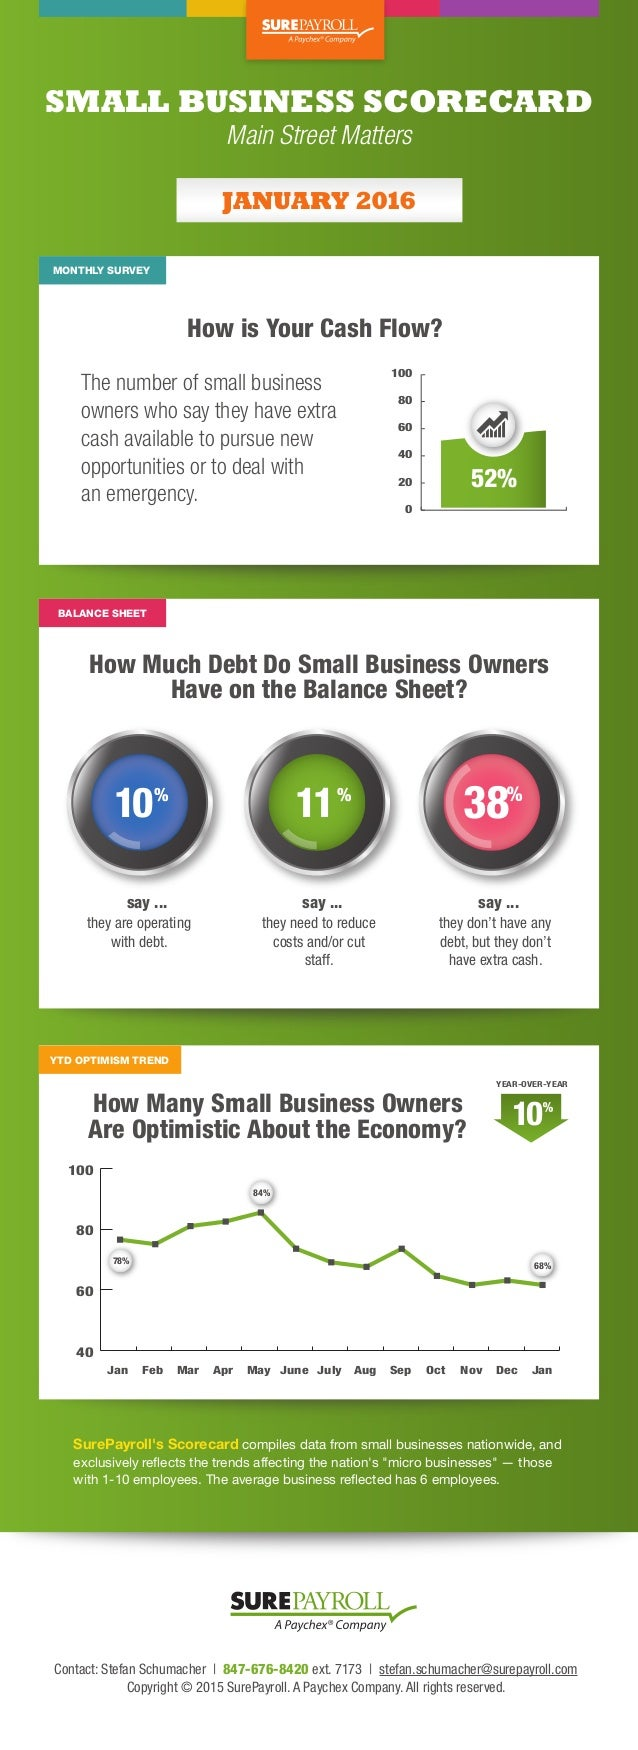 SMALL BUSINESS SCORECARD How is Your Cash Flow? How Much Debt Do Small Business Owners Have on the Balance Sheet? How Many...